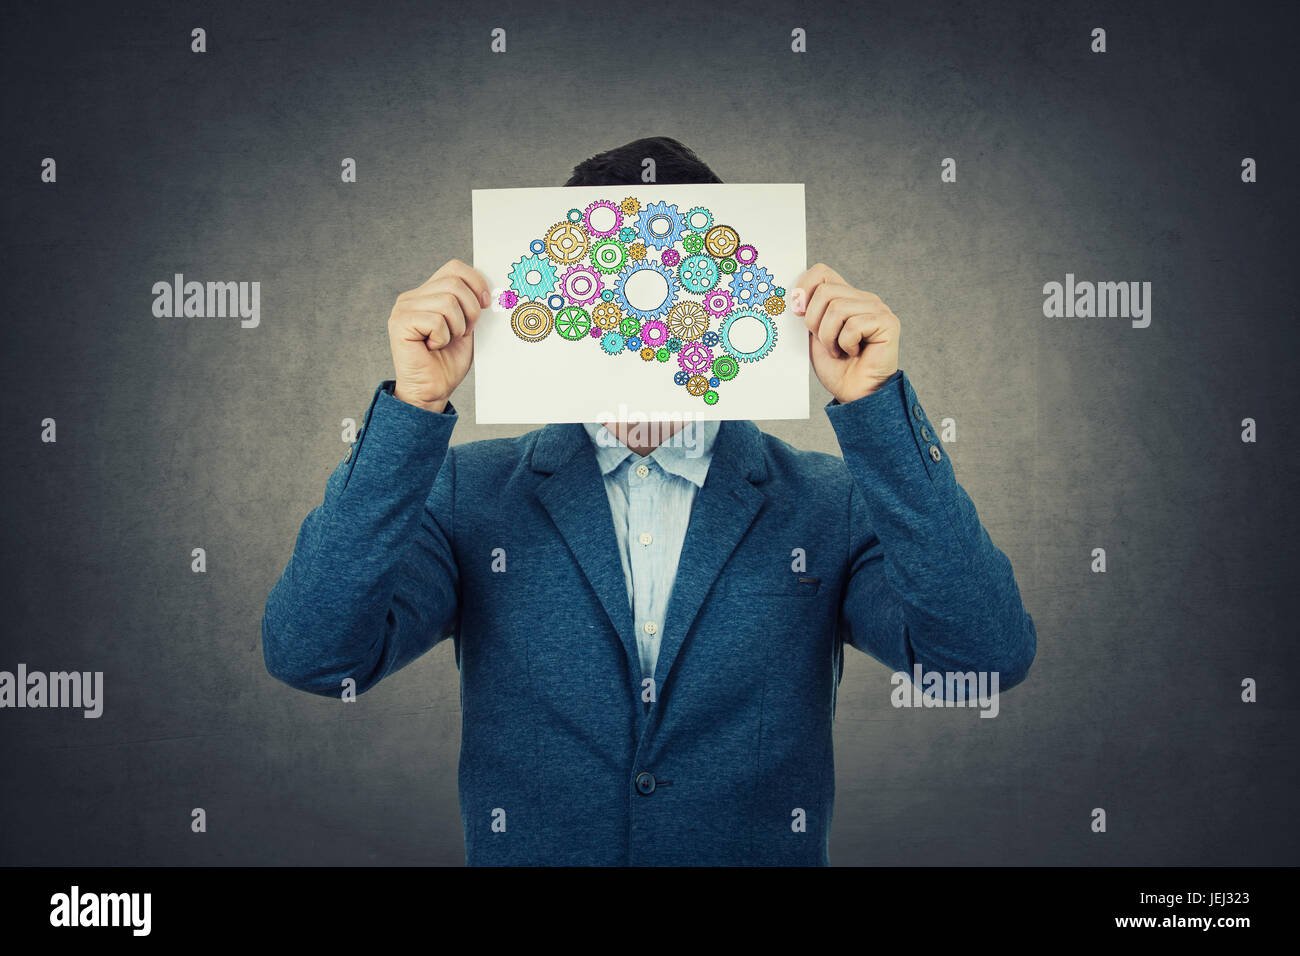 Creativity concept of a businessman covering head with a colorulful brain made from gears over his head.Idea concept. - Stock Image